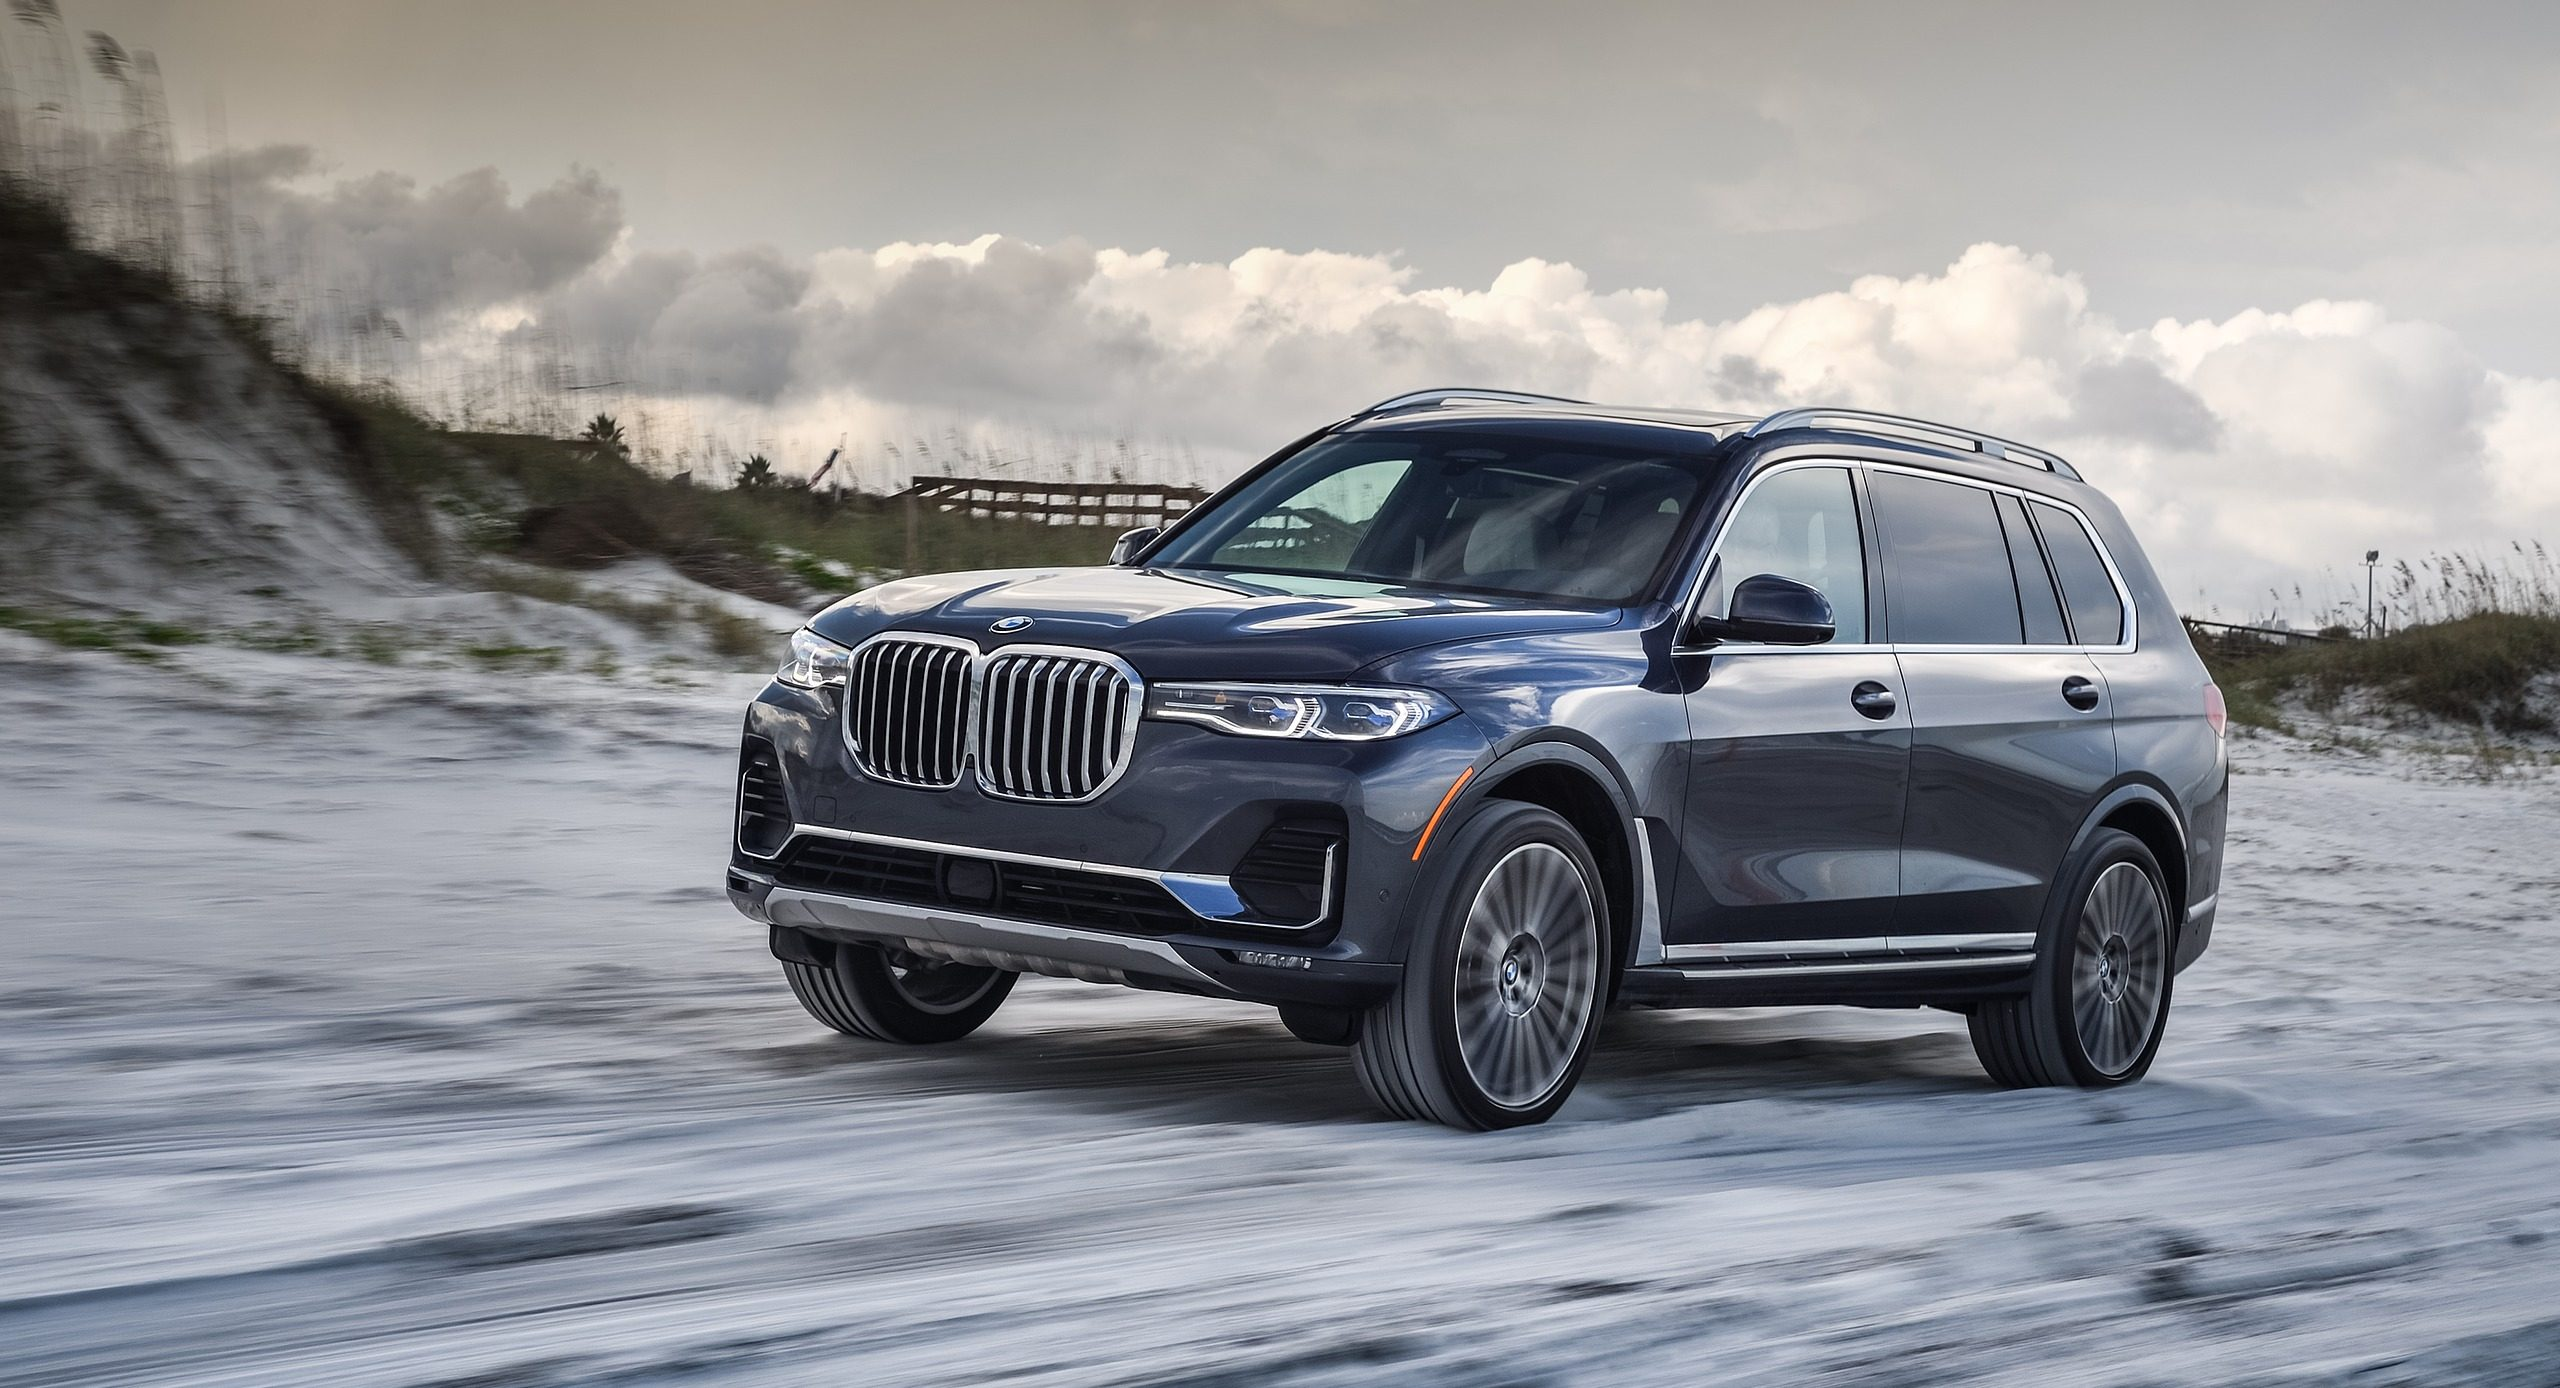 2019 BMW X7 Wallpapers   SuperCars.net